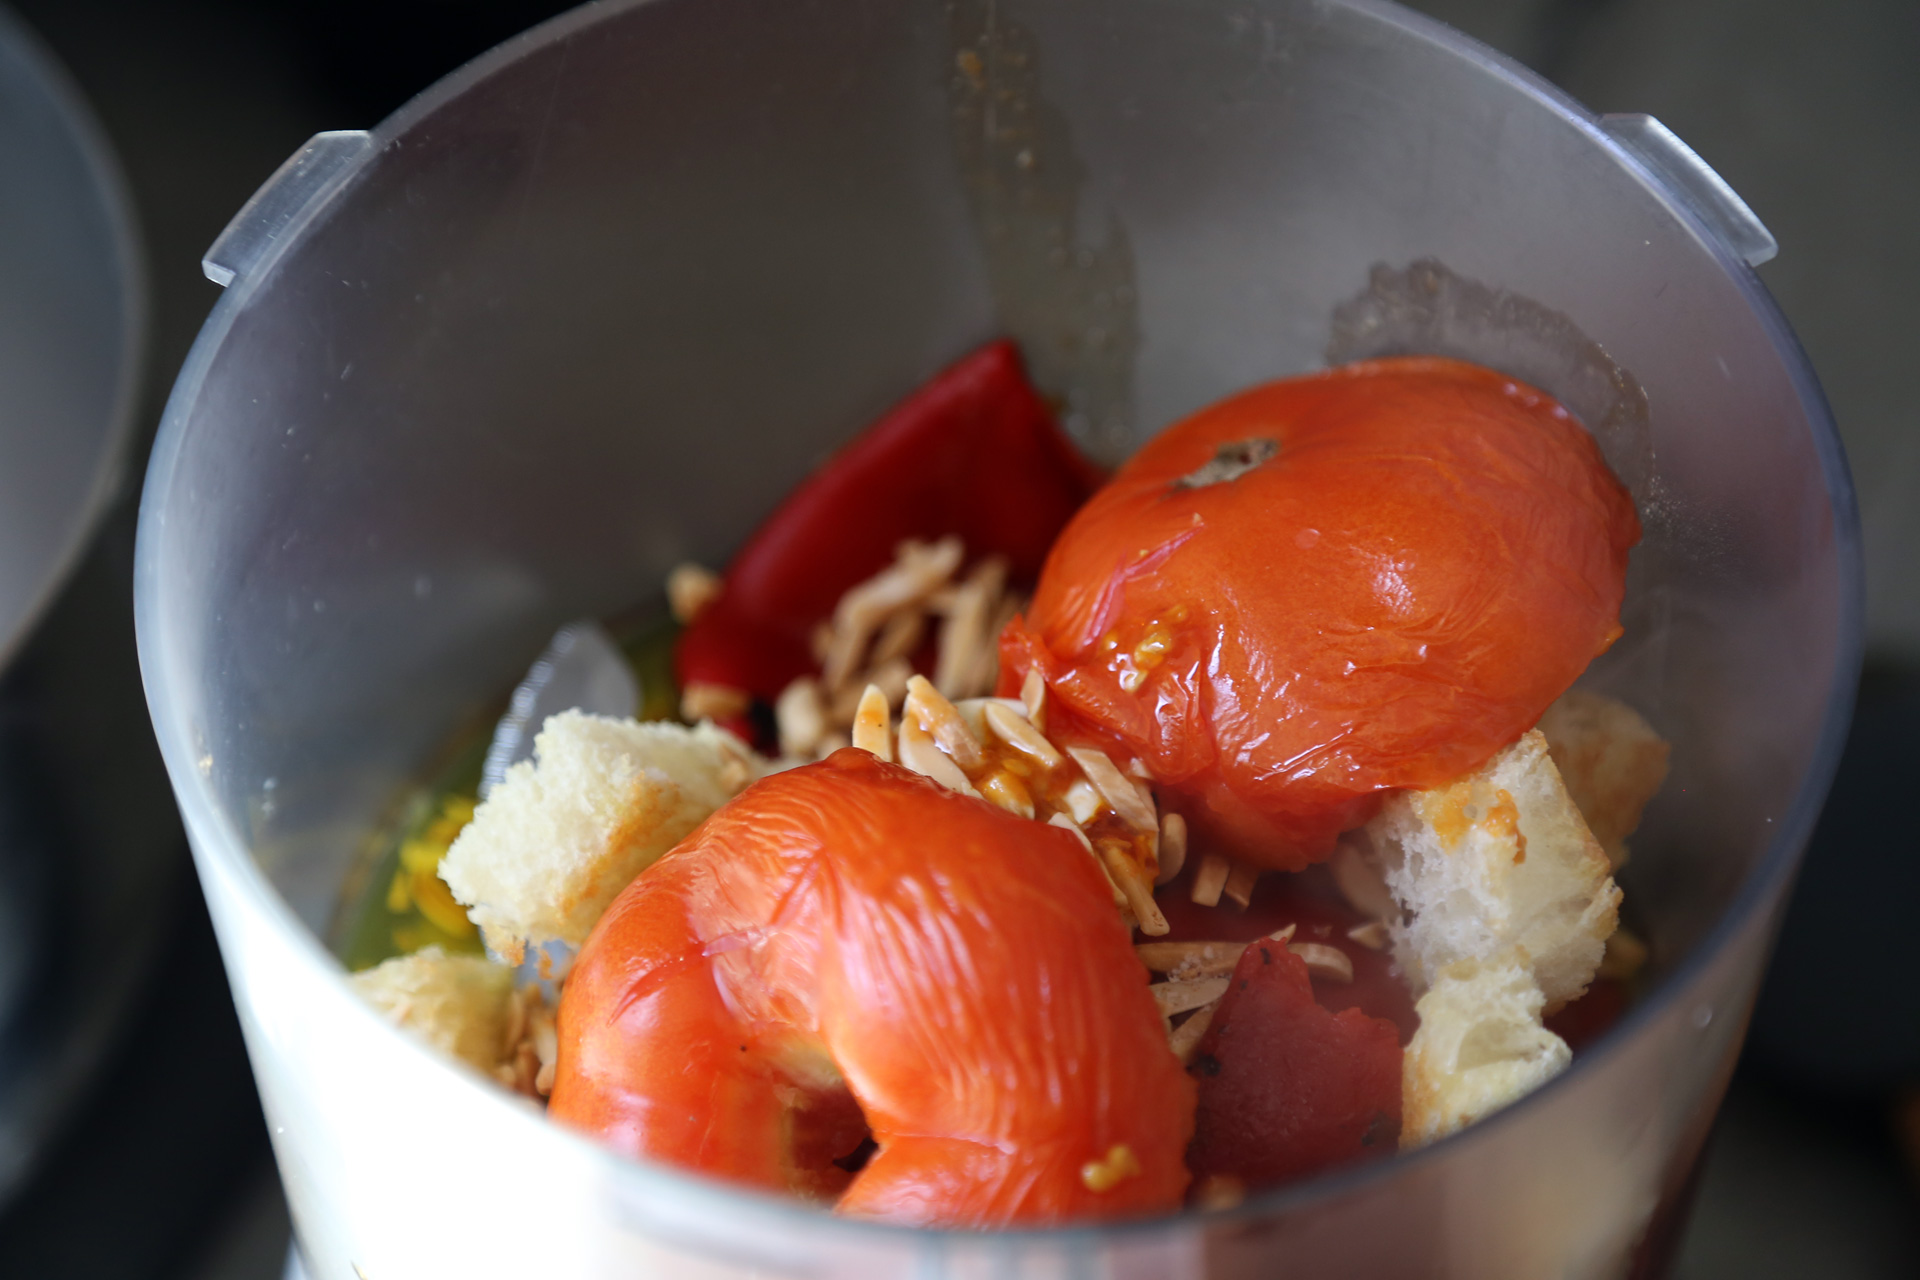 Continue to roast the tomato and garlic for another 10 minutes. Remove the tomato peel and discard. Transfer the tomato and garlic to the food processor.